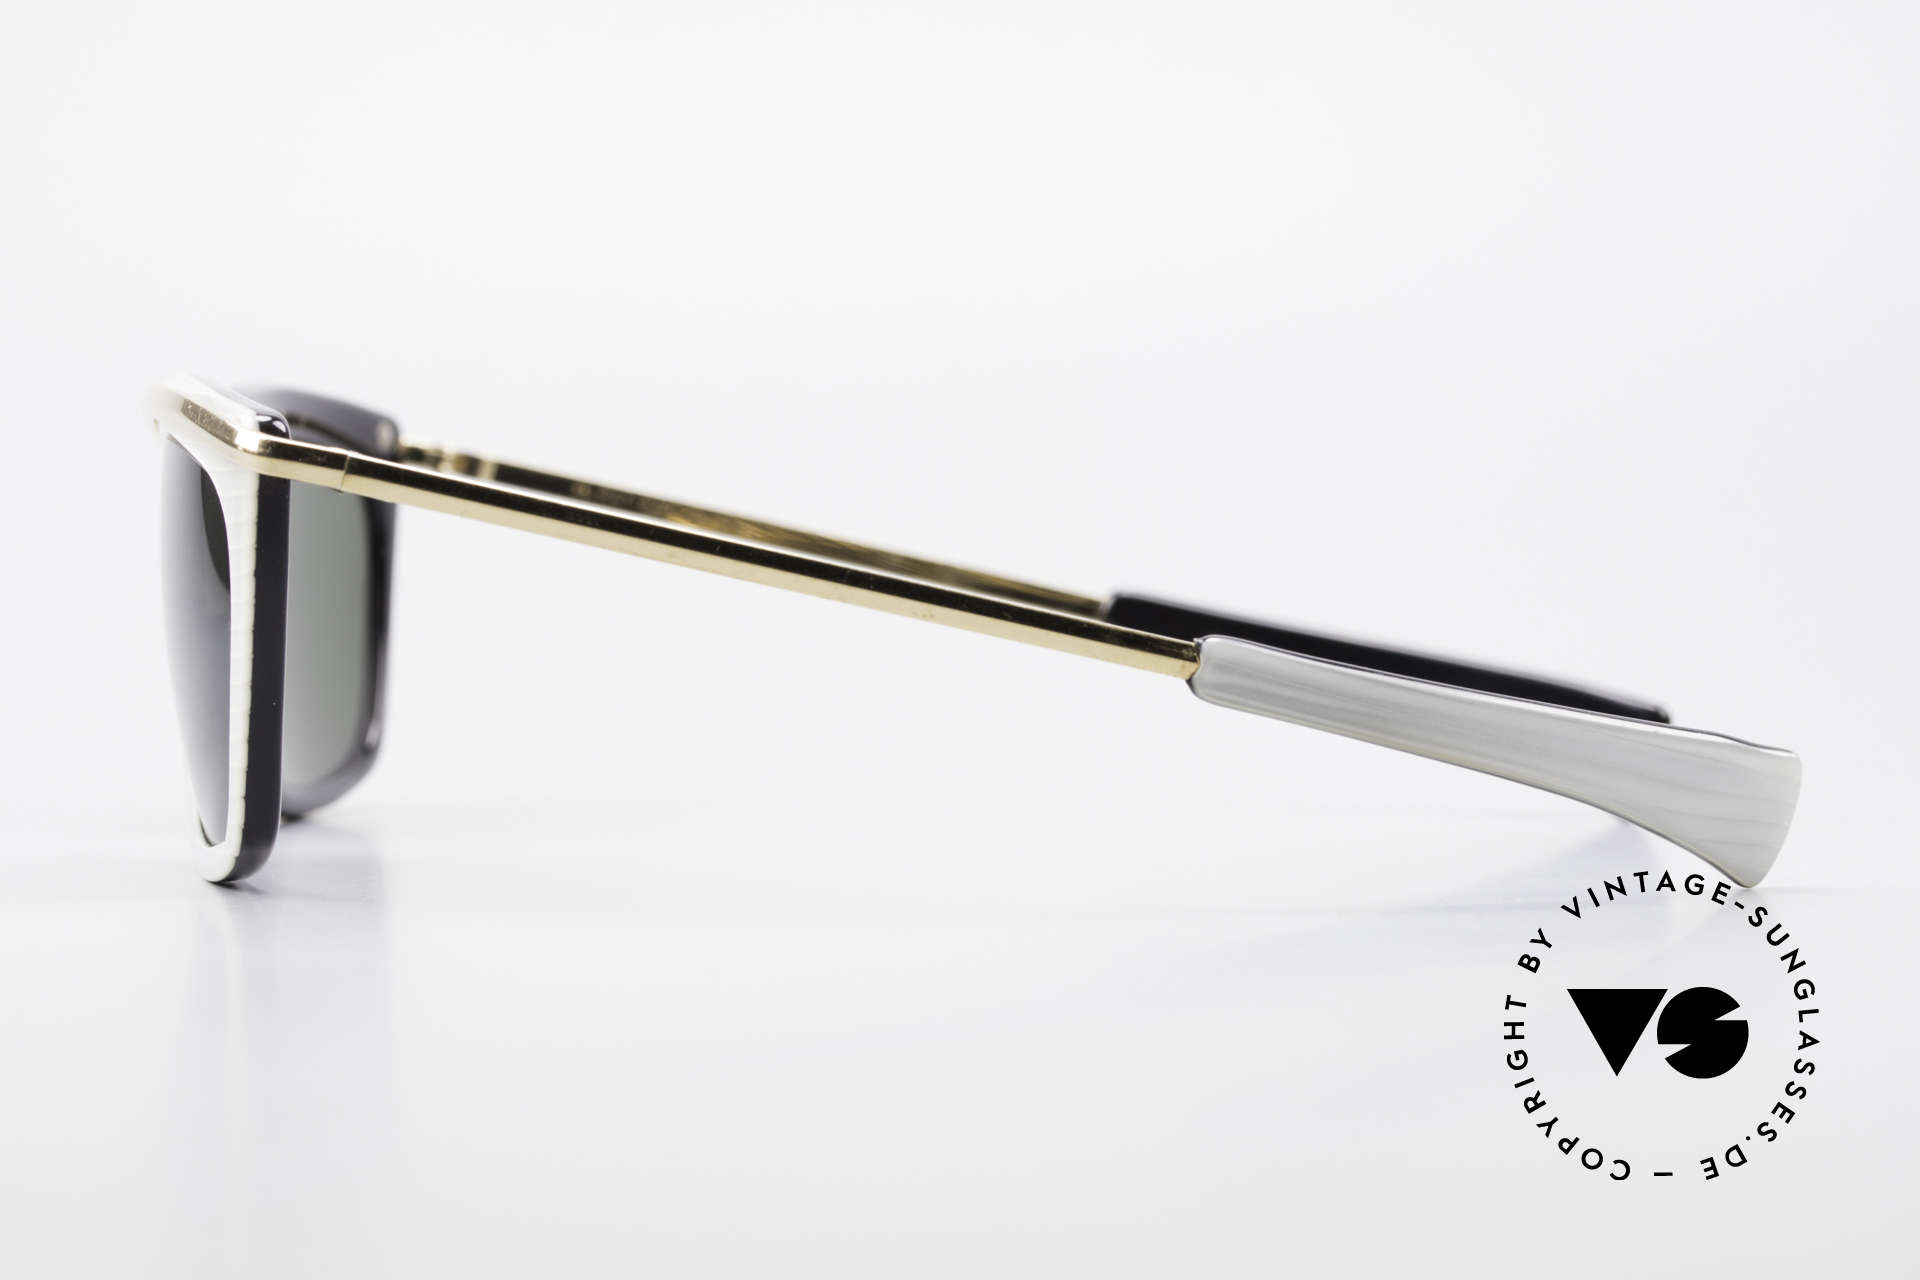 Ray Ban Olympian II B&L Ray-Ban Sunglasses USA, NO RETRO sunglasses, but an 80's vintage original, Made for Men and Women